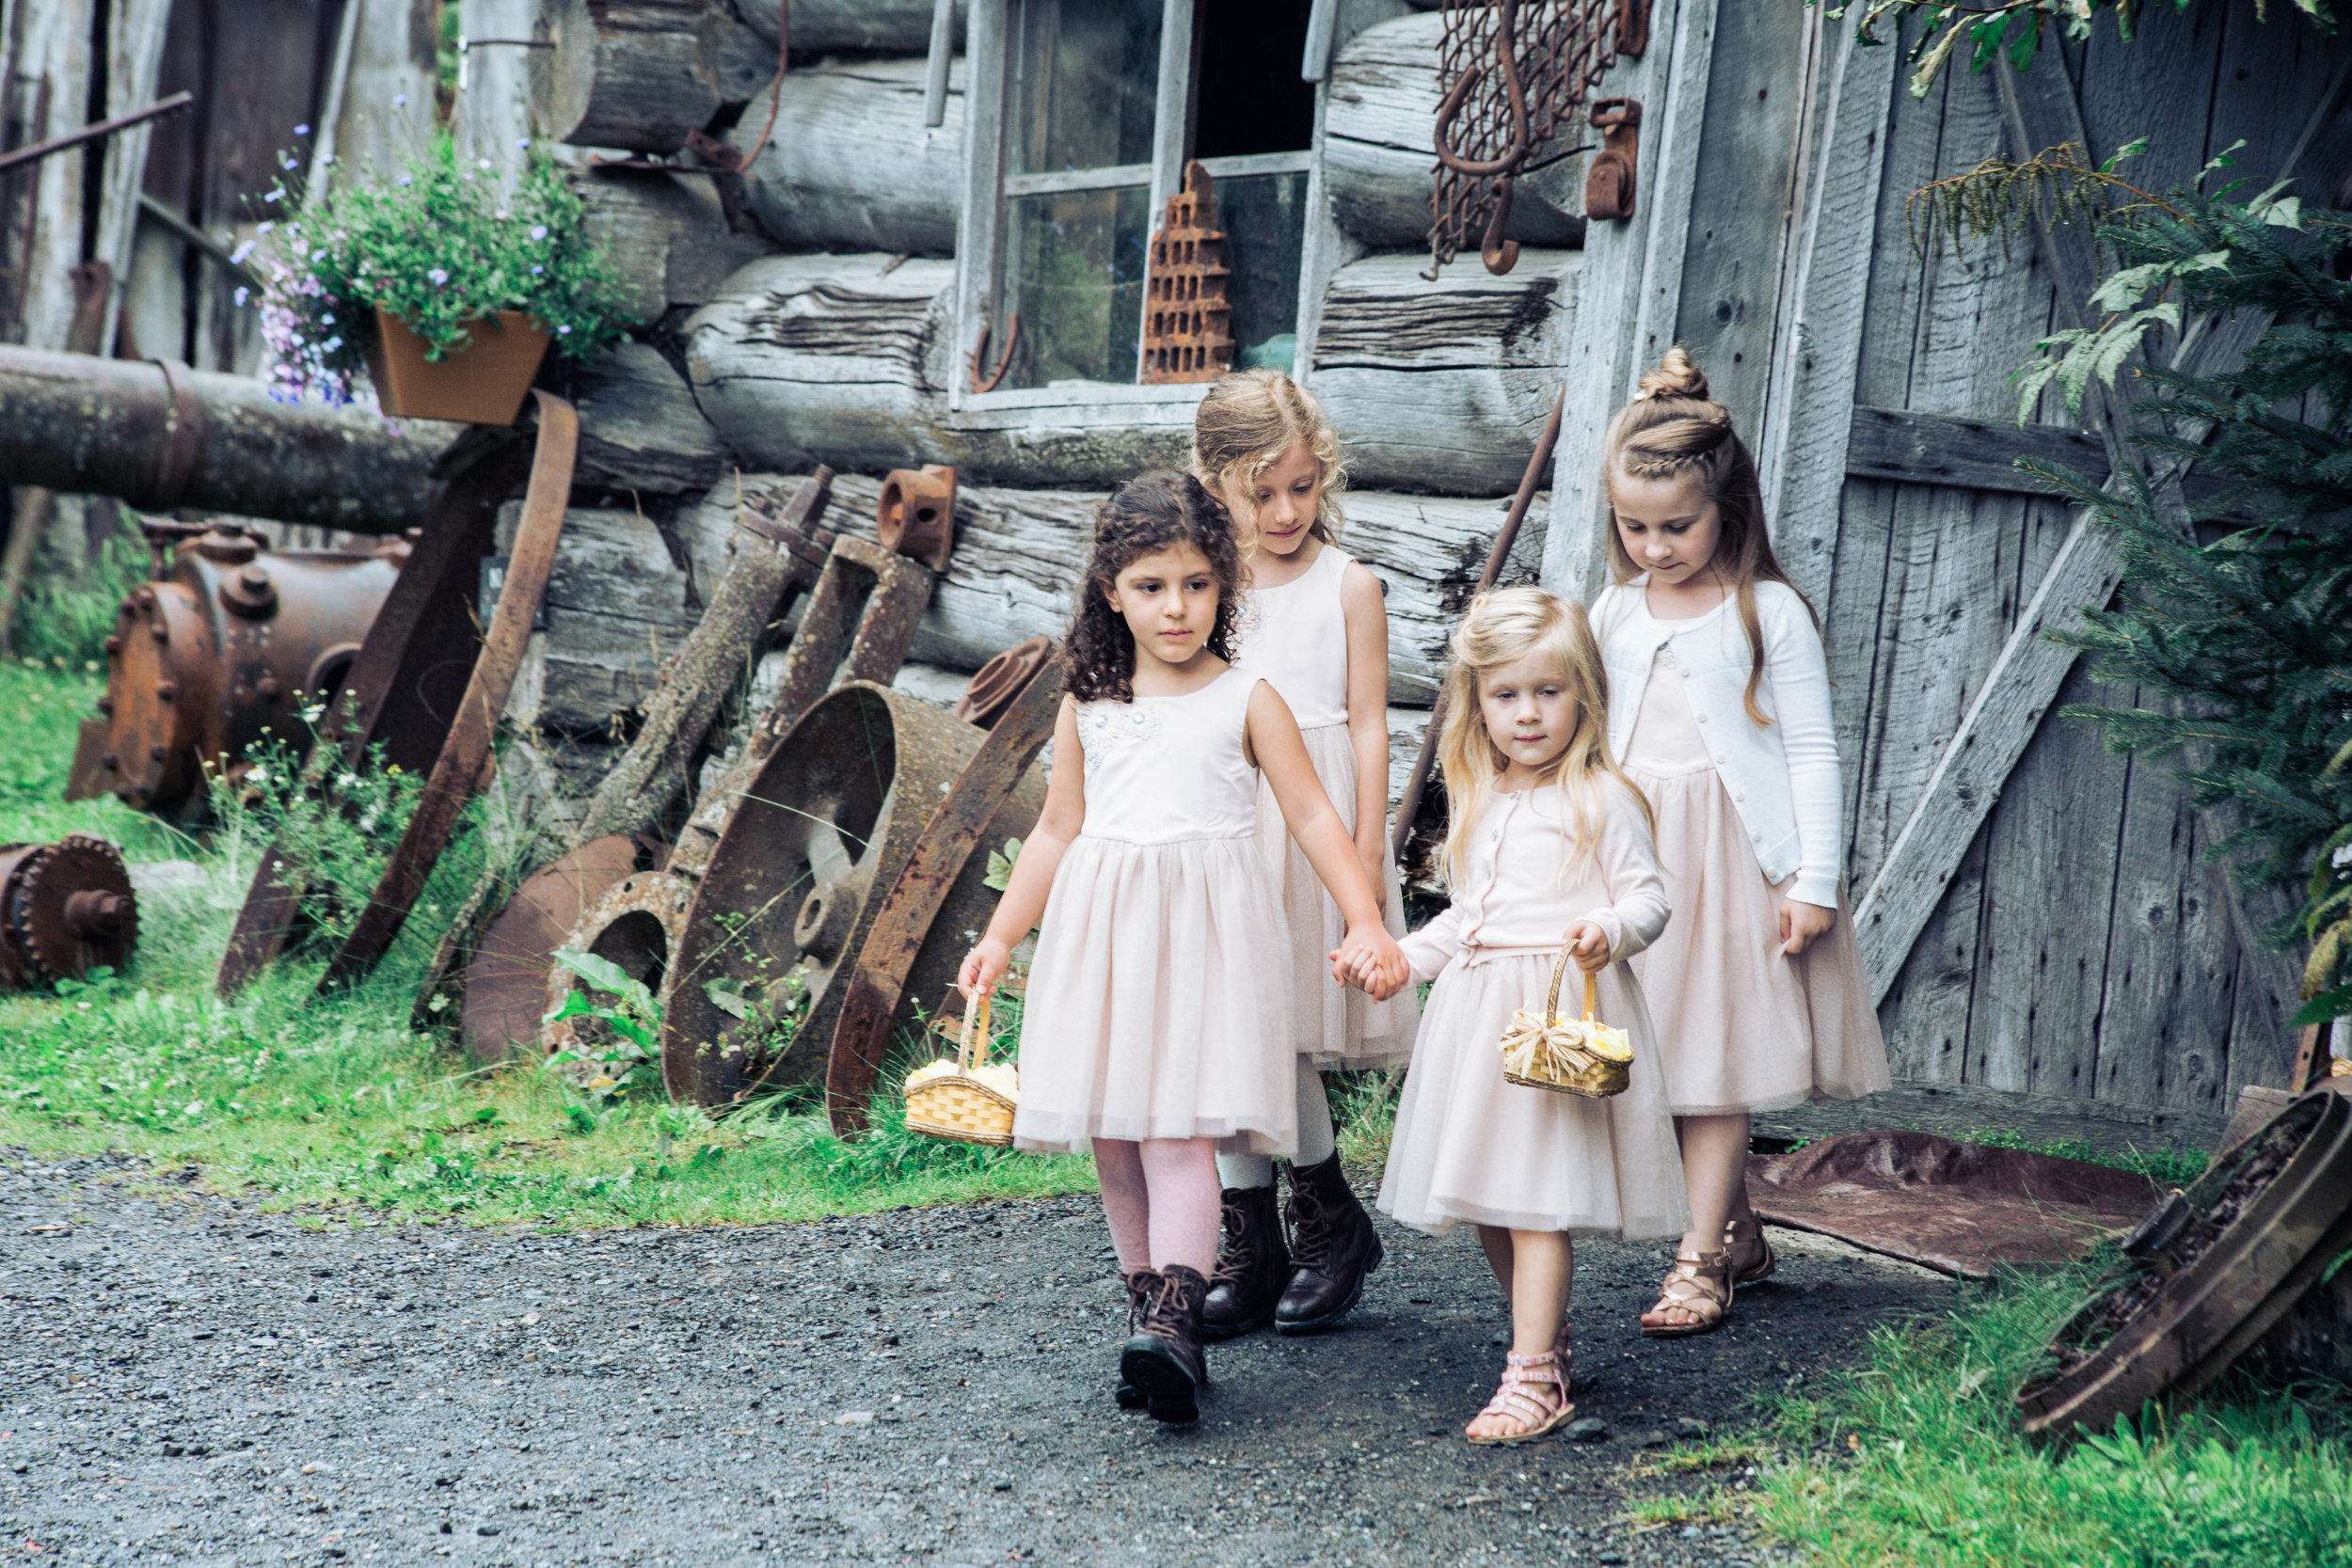 The cutest group of Flower Girls I've ever seen!